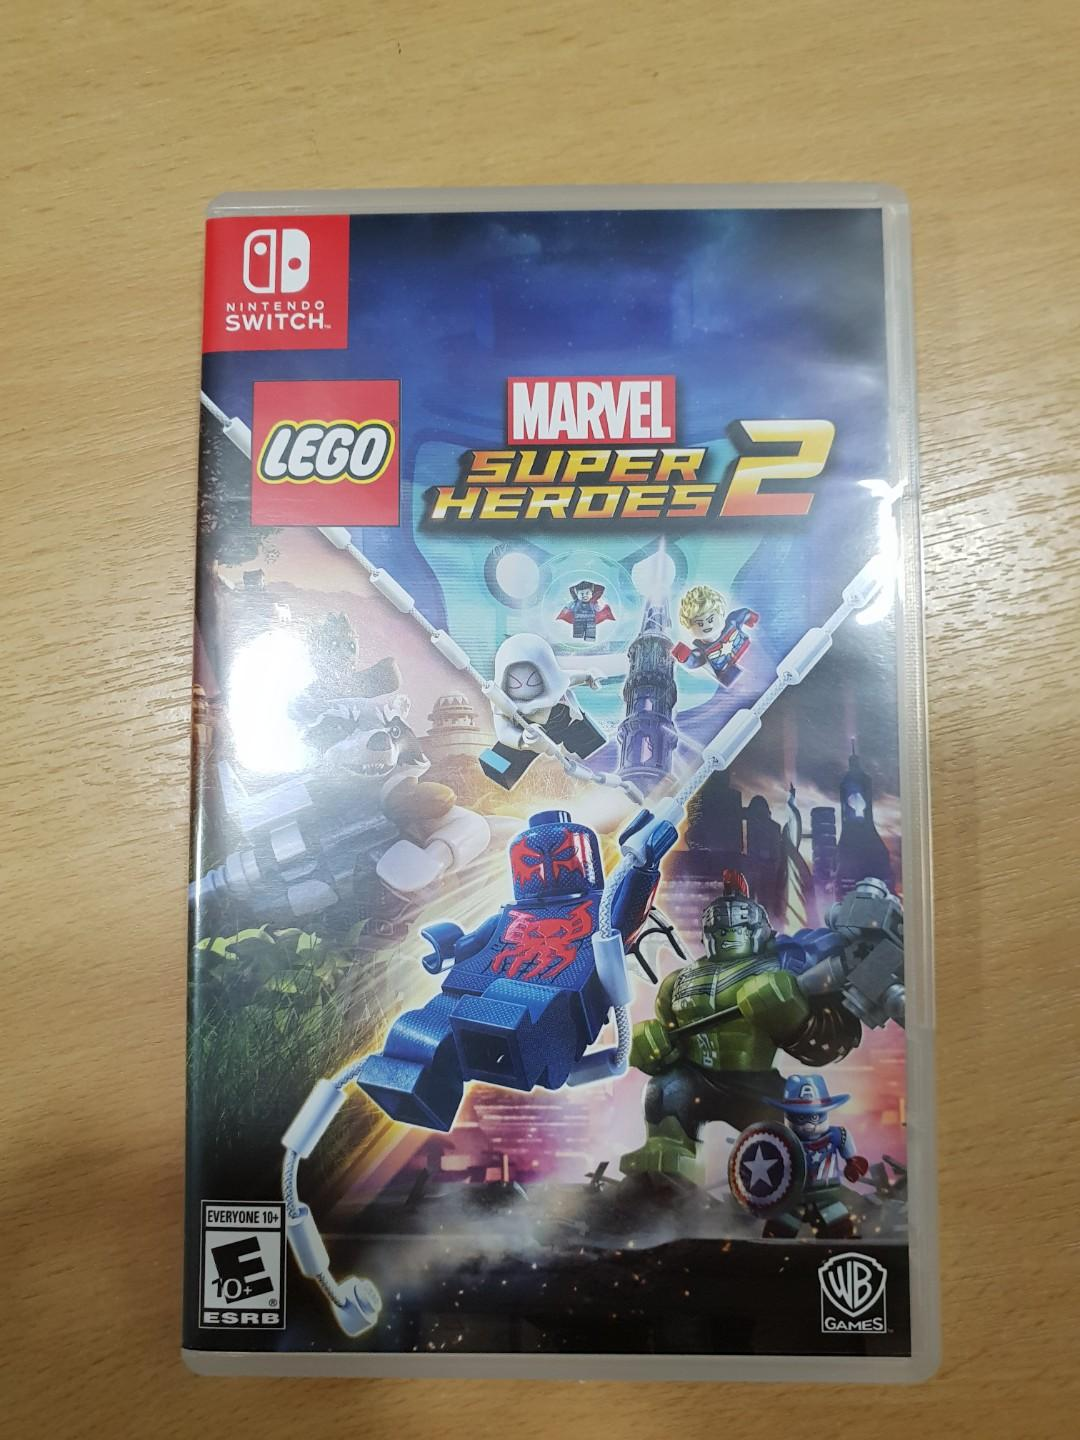 Lego marvel super heroes 2 switch on Carousell